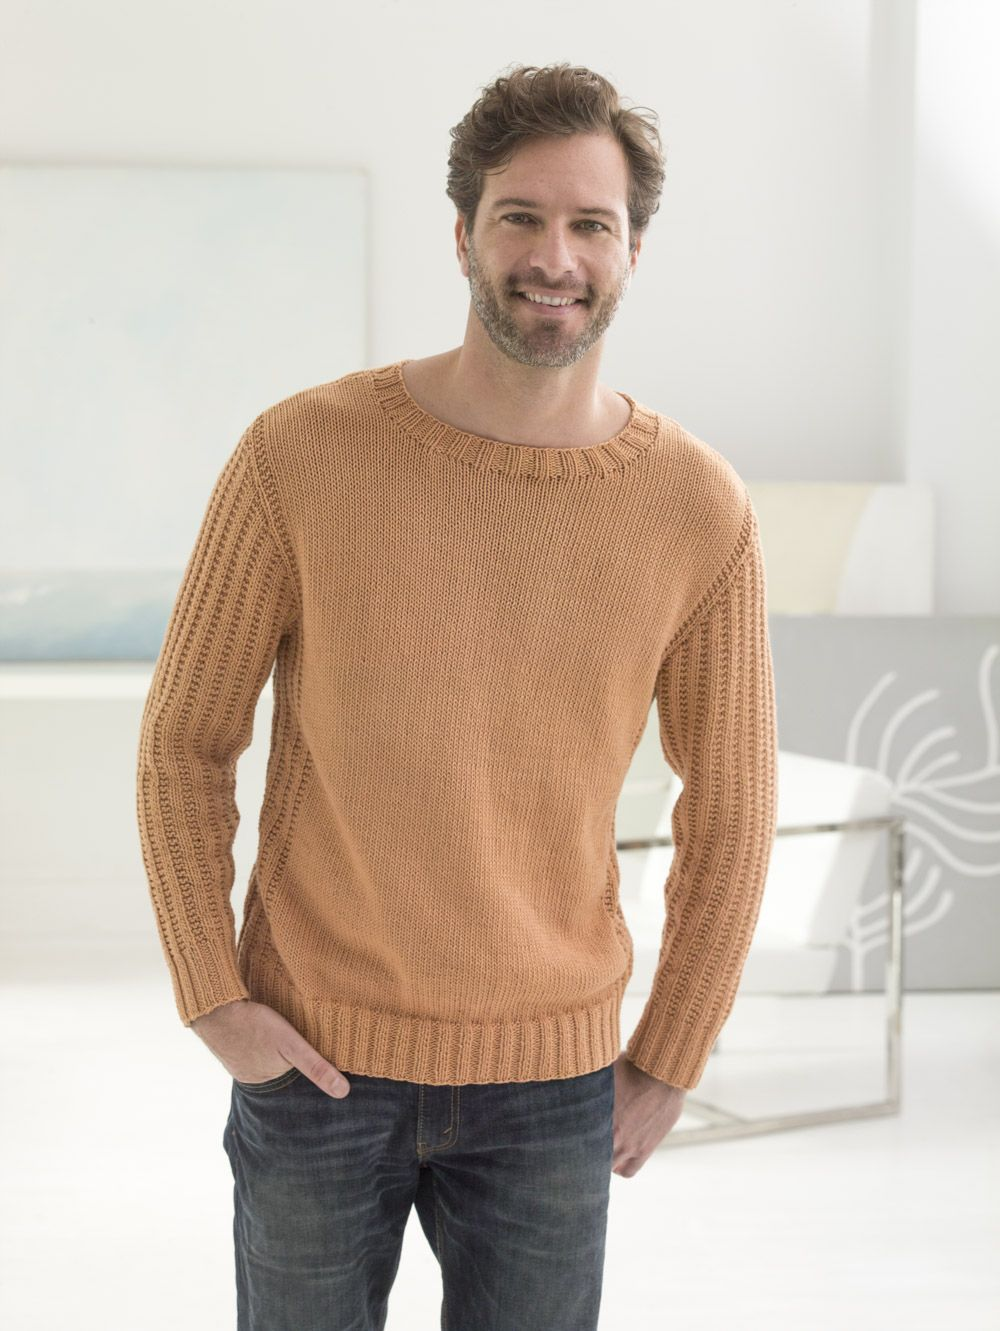 This classic cotton pullover is loved by men and women alike get this classic cotton pullover is loved by men and women alike get the free knitting pattern and make it with lion brand cotton bankloansurffo Choice Image